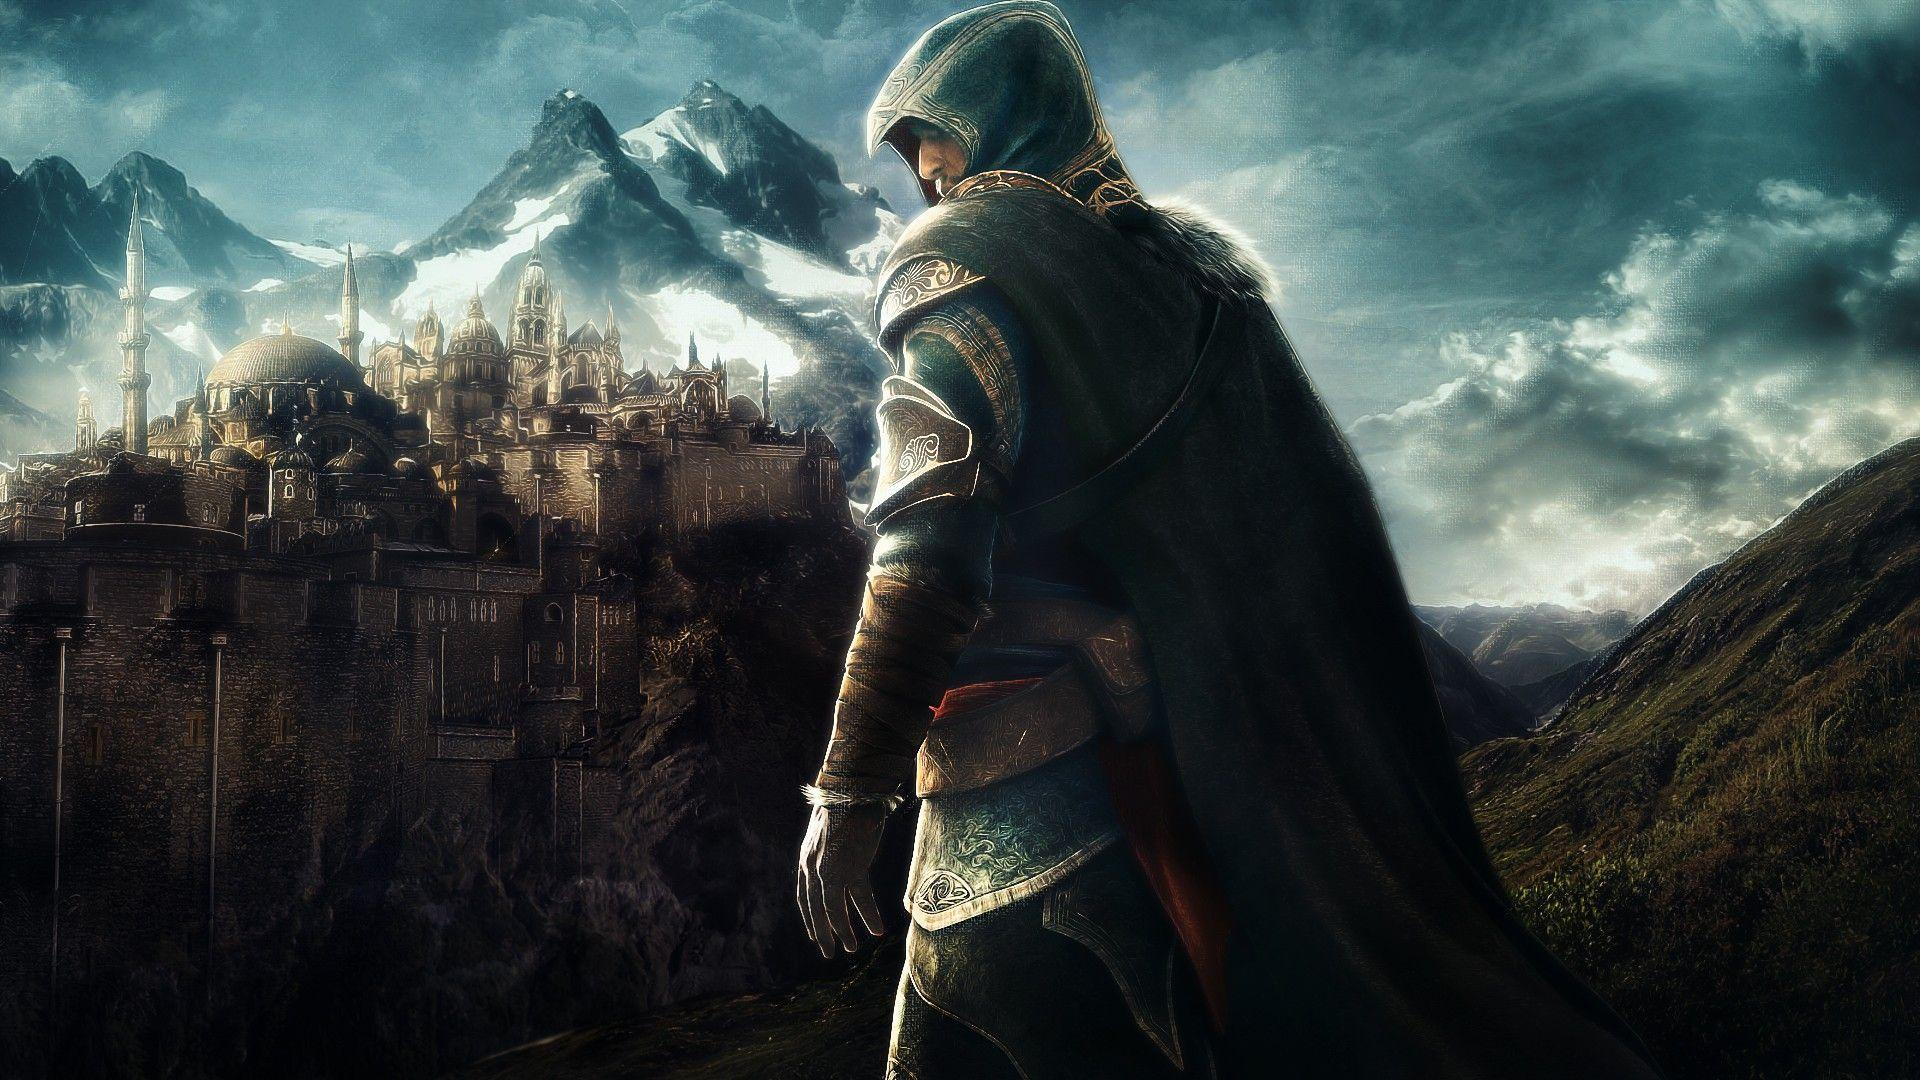 Hd wallpaper games - Wallpapers For Gt Hd Game 1080p Widescreen High Definition Images